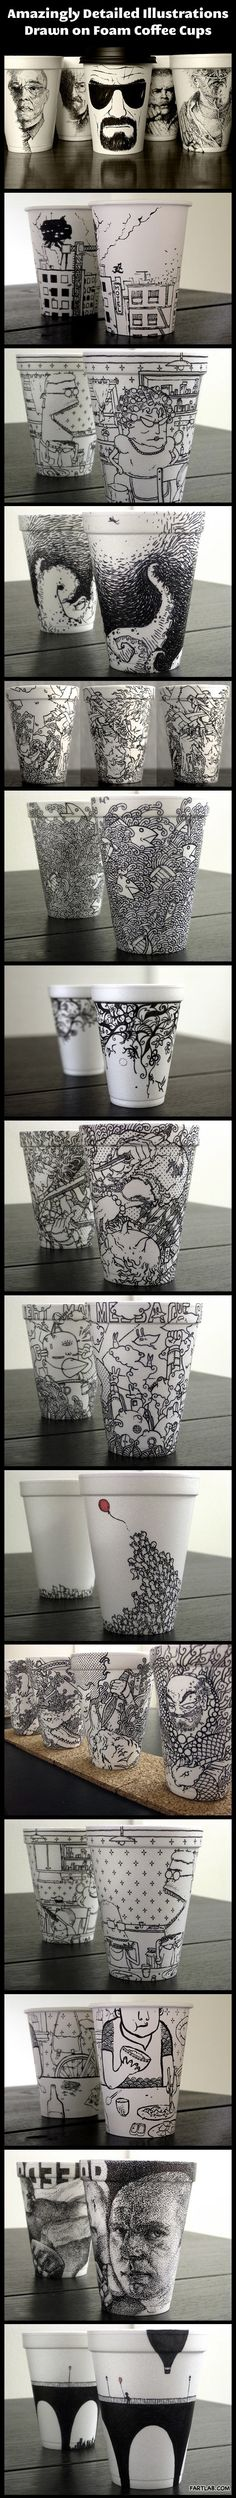 Awesome foam coffee cup designs. i like it because it is so cool, it has some natural design. it would give me some idea about cup design for maze cafe